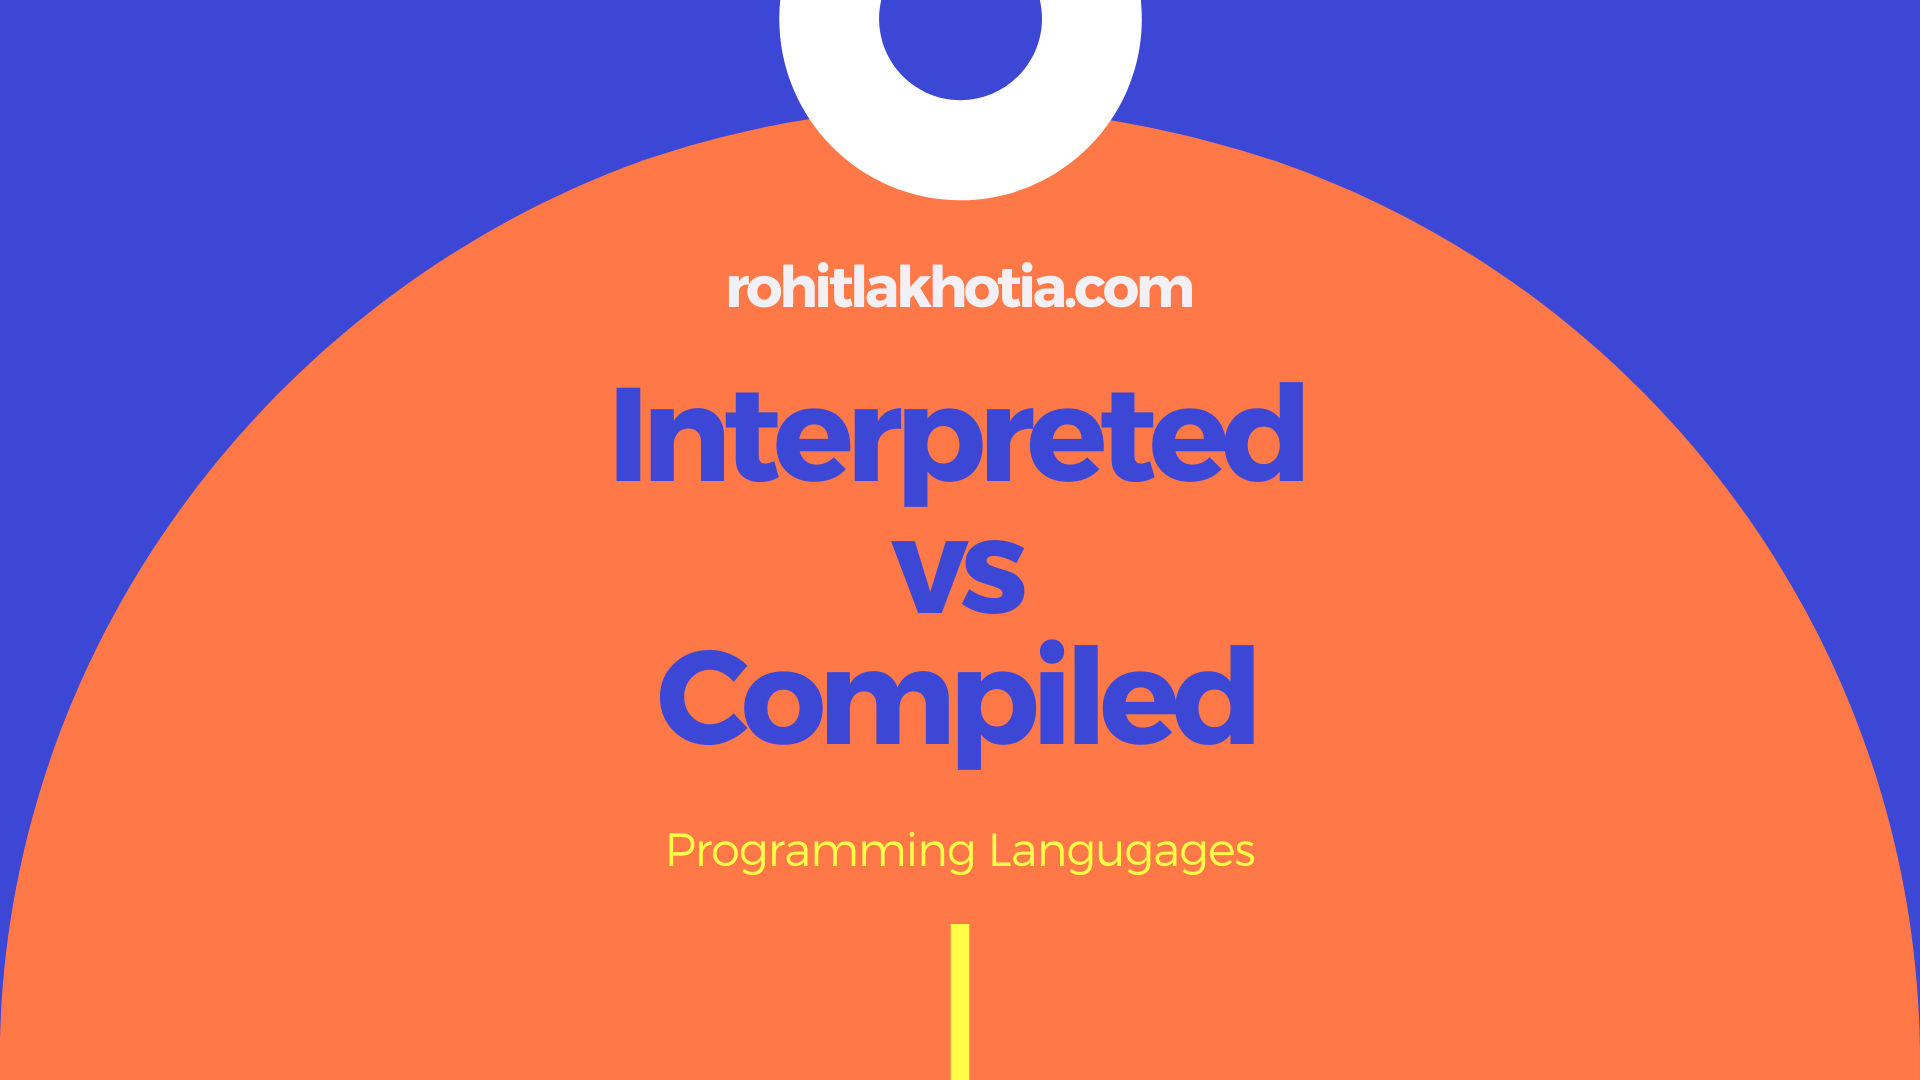 Interpreted vs. Compiled programming languages